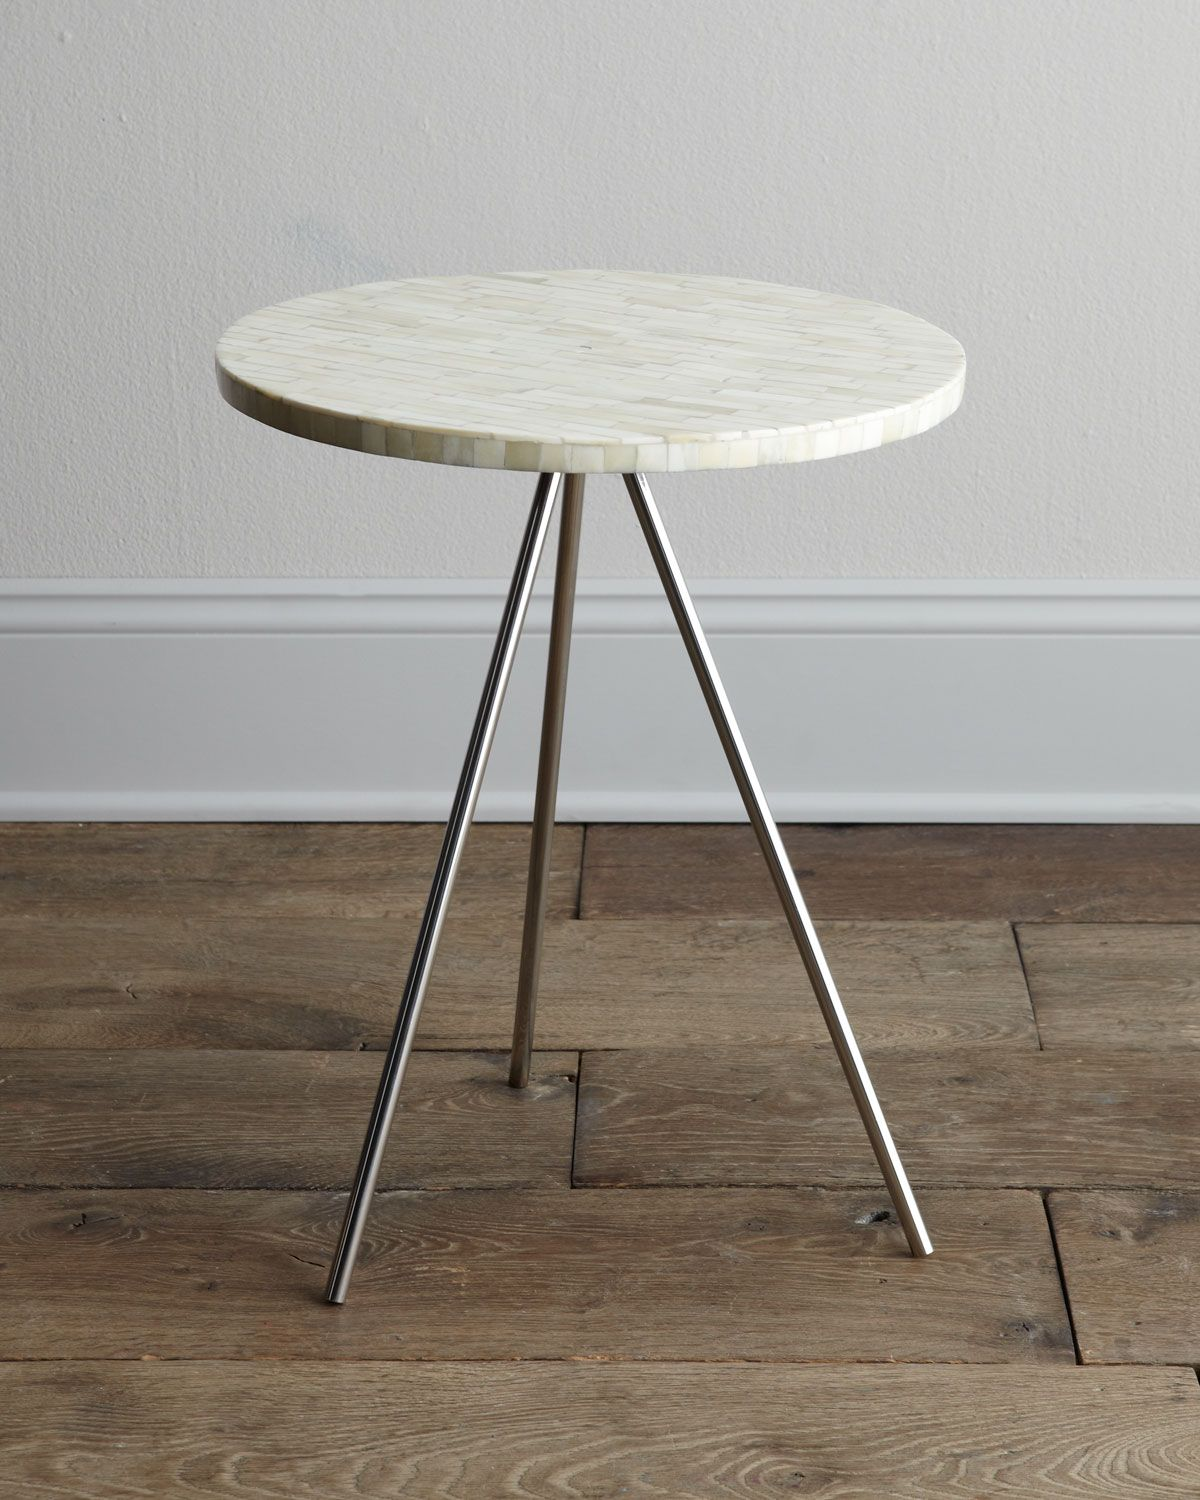 pin shisepan weberdist mawr metal accent table bryn side regina andrew design neiman marcus beautiful centerpieces for dining room fire pit set small and chair circular cotton